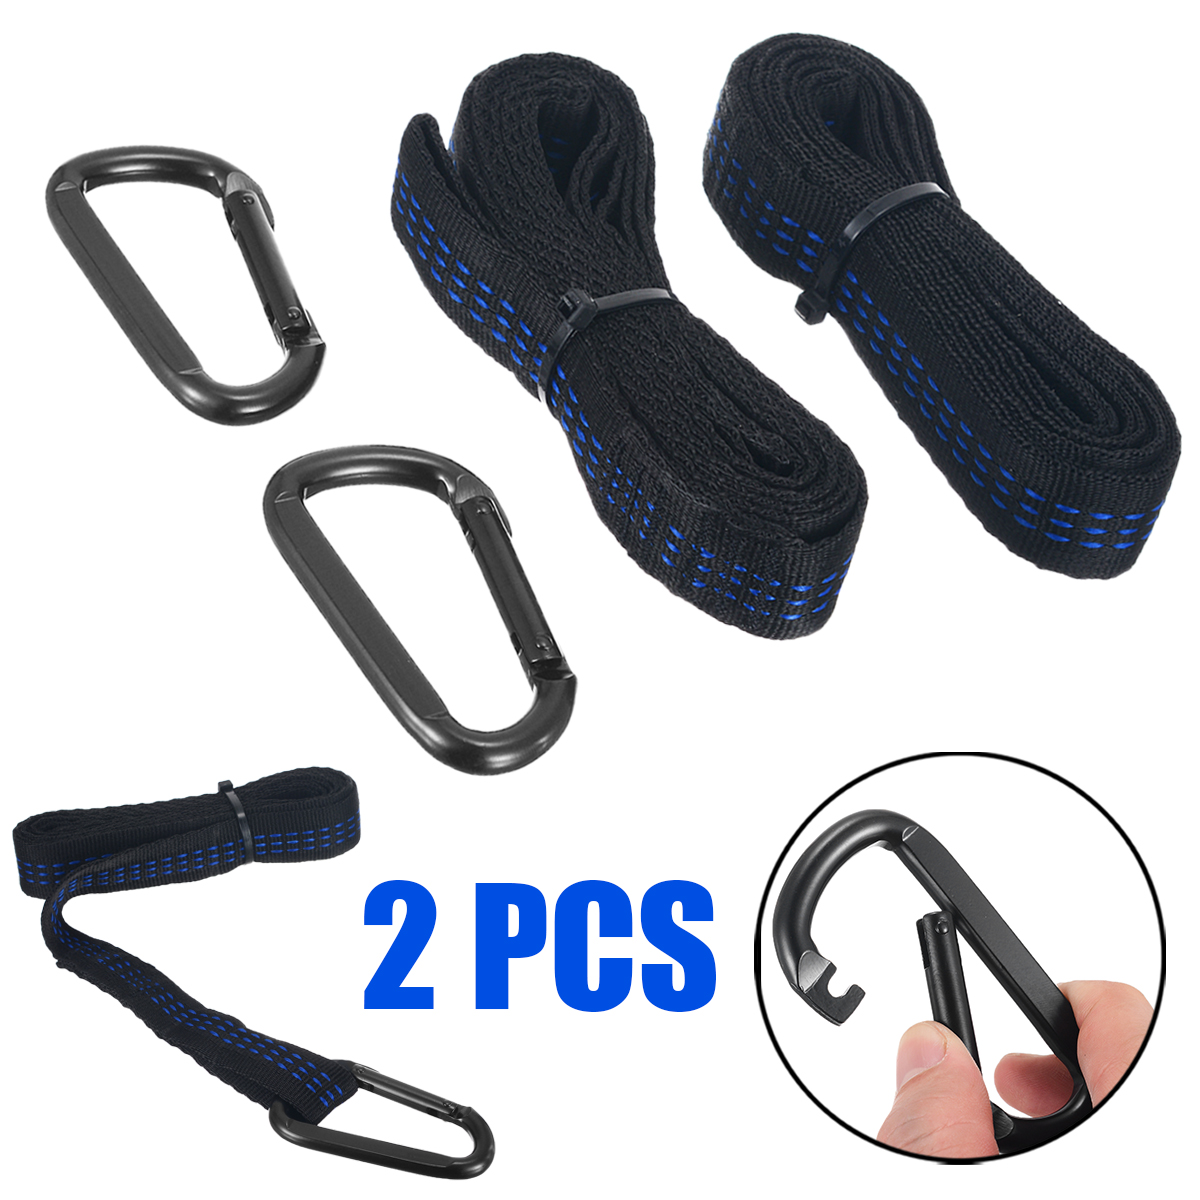 2pcs Adjustable Tree Hanging Belt Strong Extension Hammock Straps Heavy Duty Suspension +2 Buck For Camping Outdoor Suoo